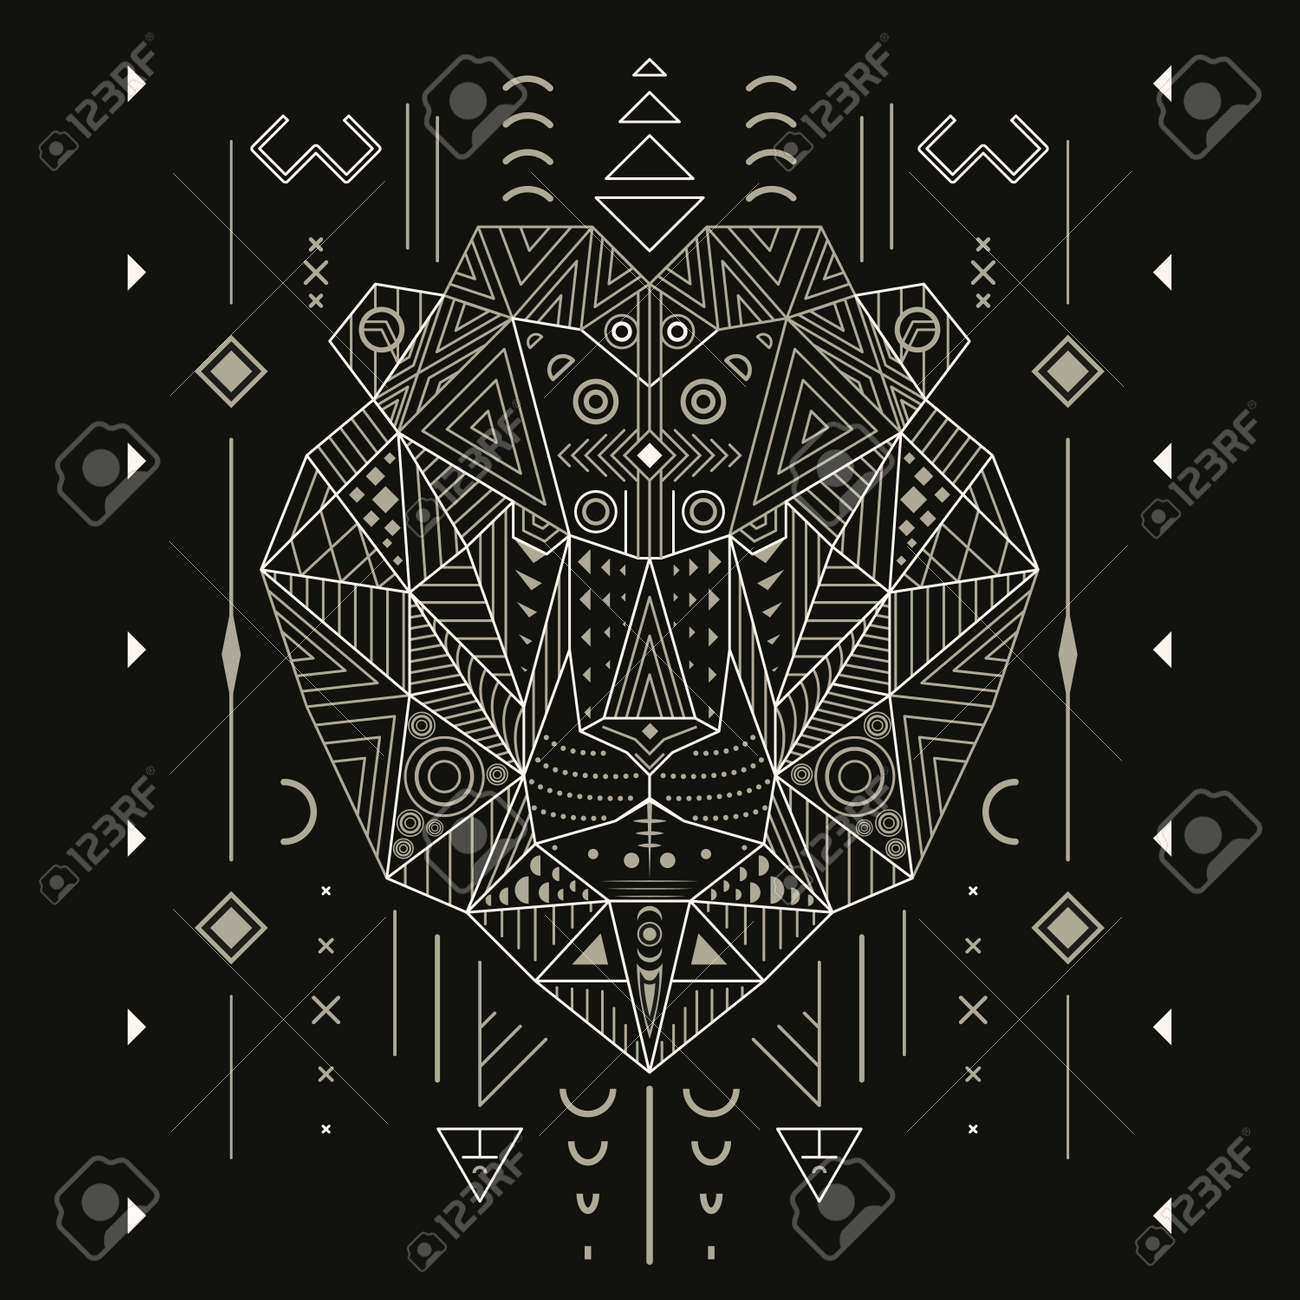 Abstract lion ornament ethnic vector illustration, tribal, tattoo, animal, art, stencil, design isolated on black background line art - 55832591